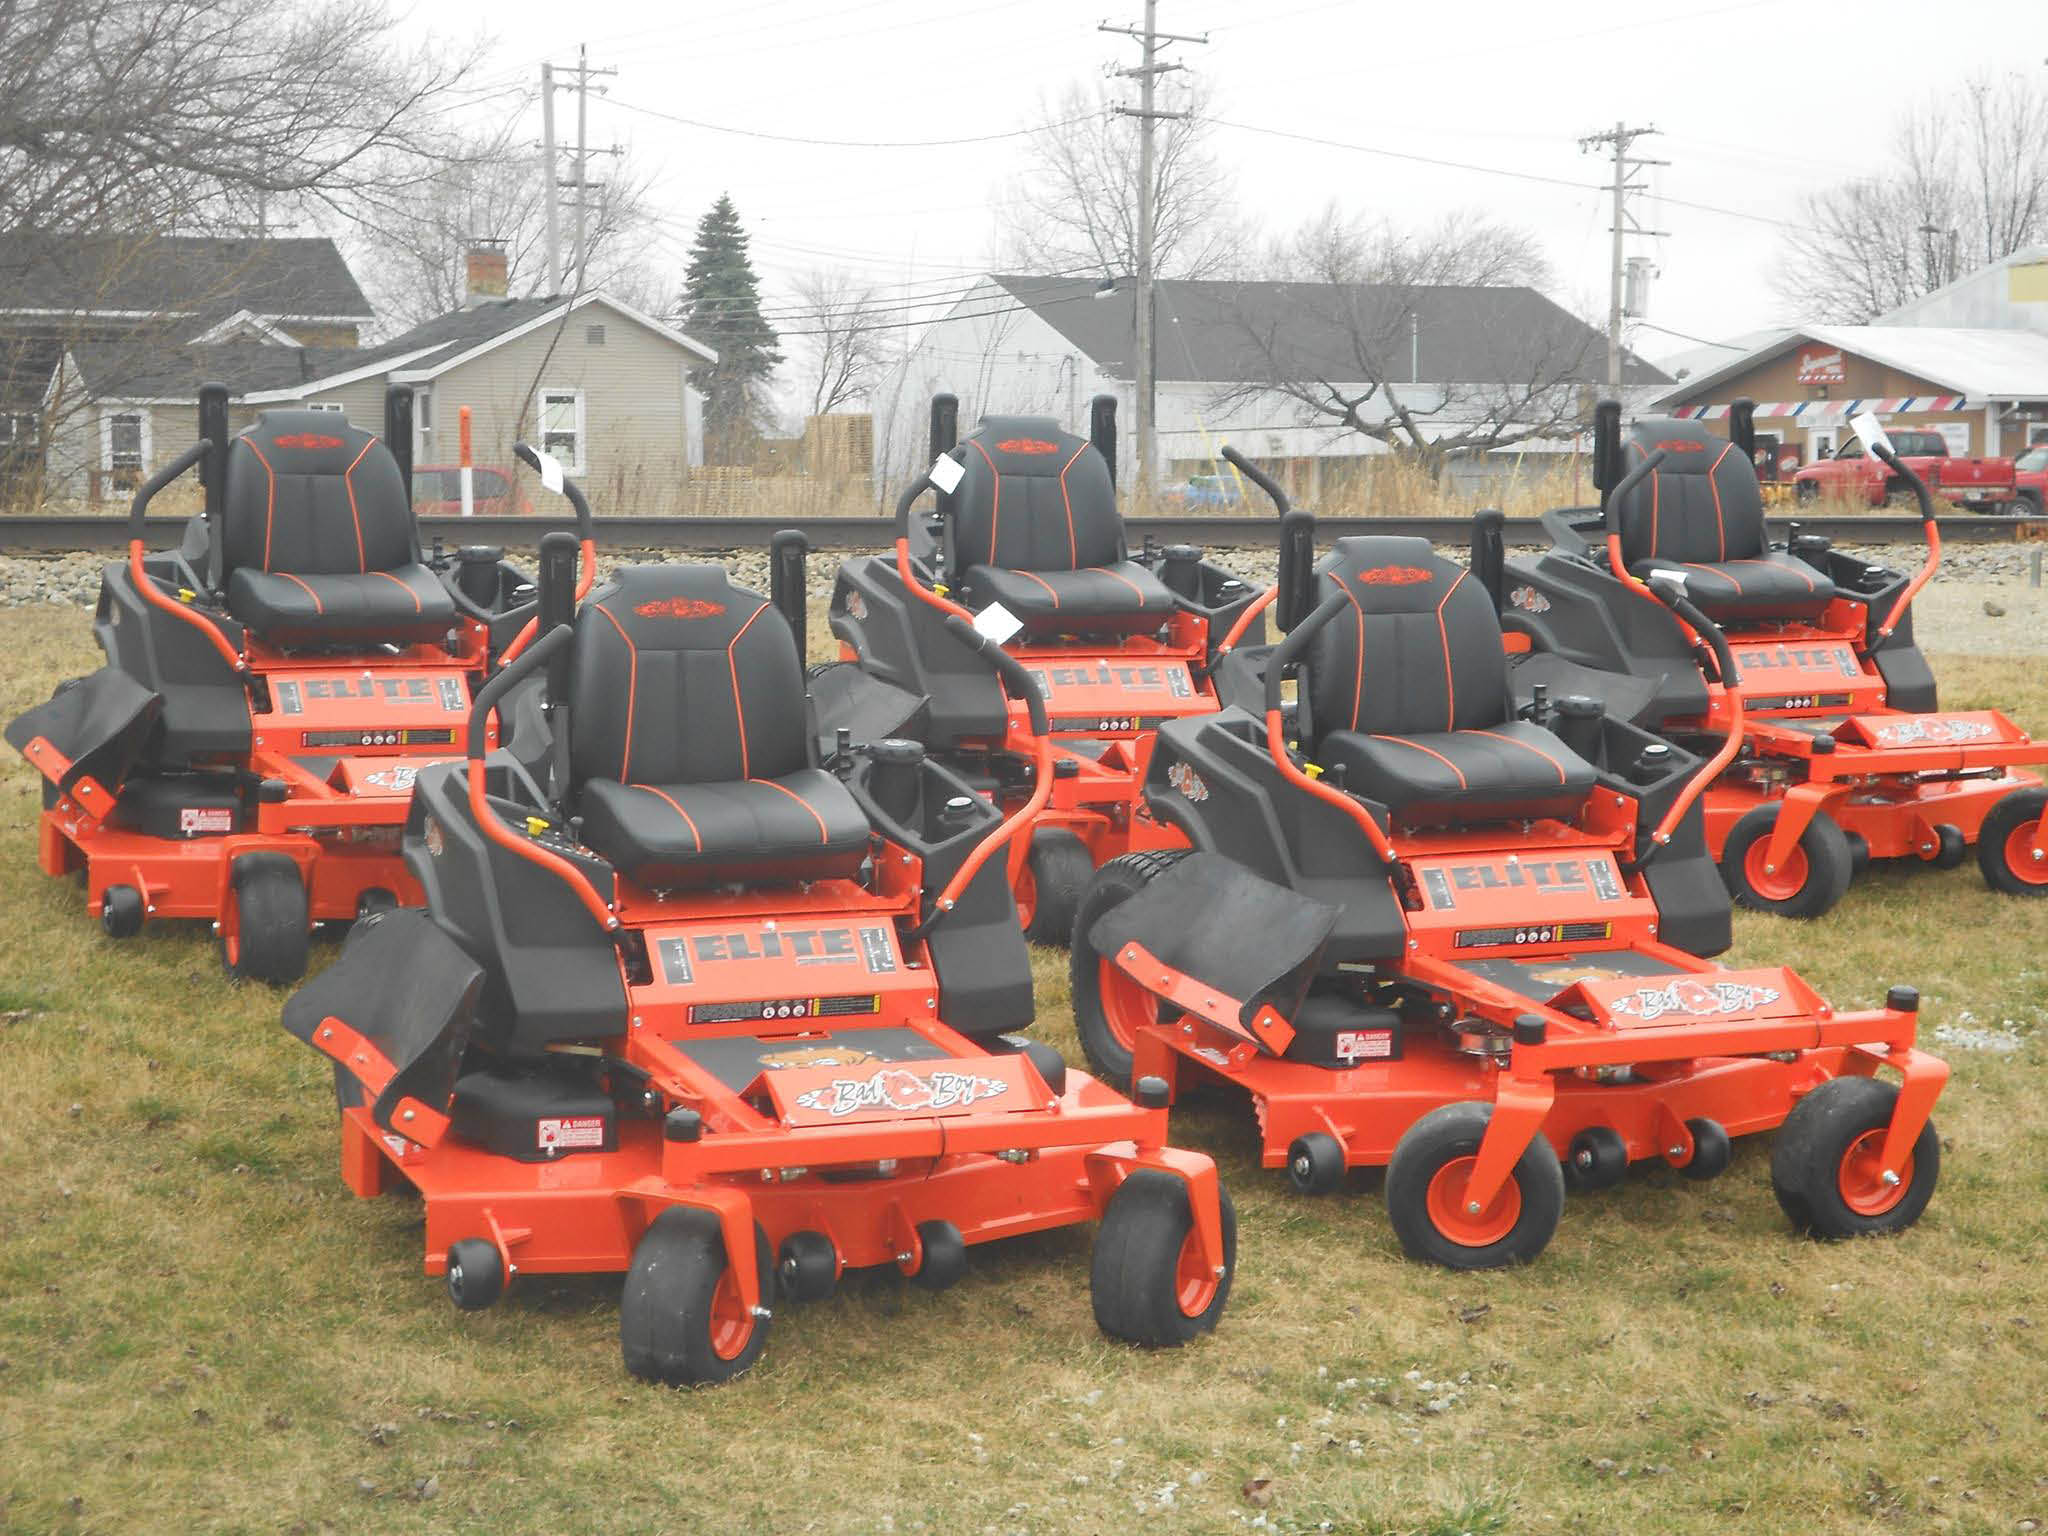 Parker Power Equipment near Racine, WI sells Zero Turn Riding Lawnmowers